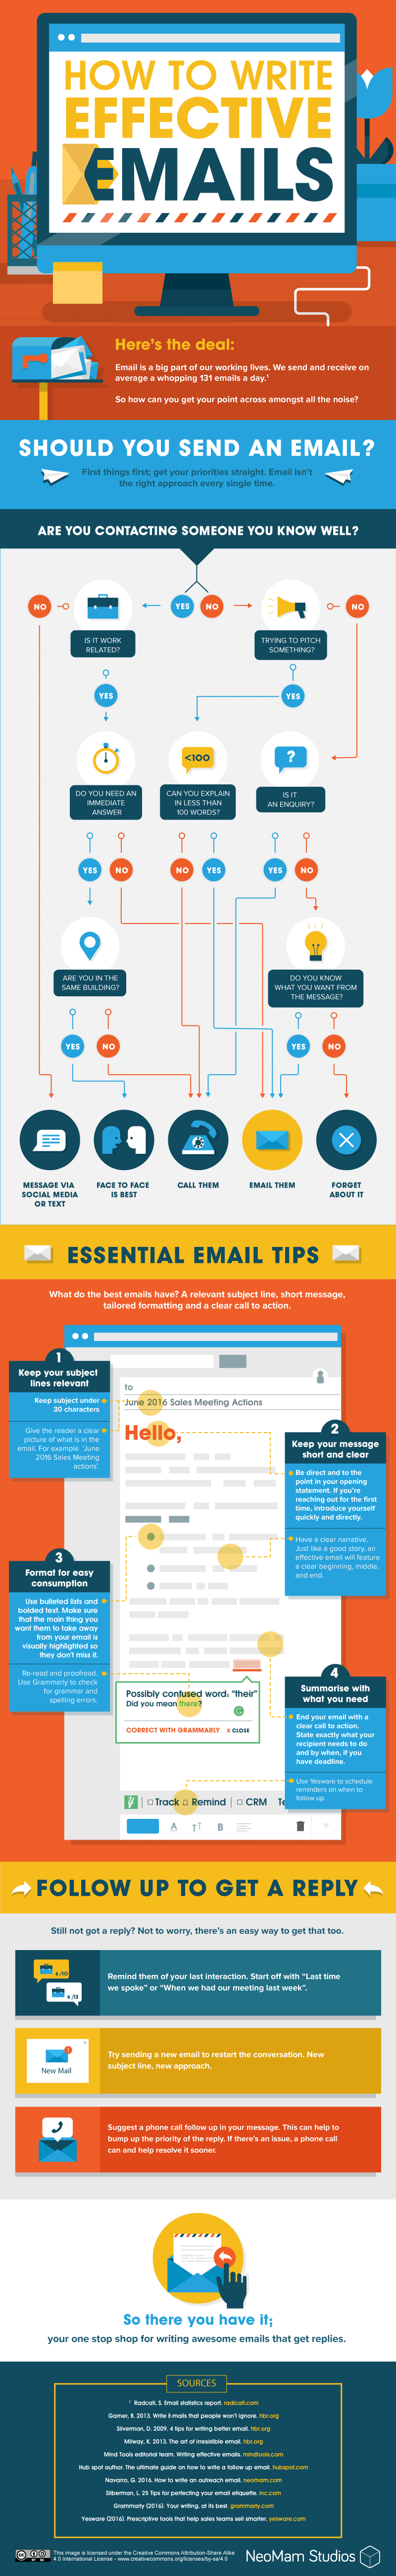 how-to-write-effective-emails-dv3-1